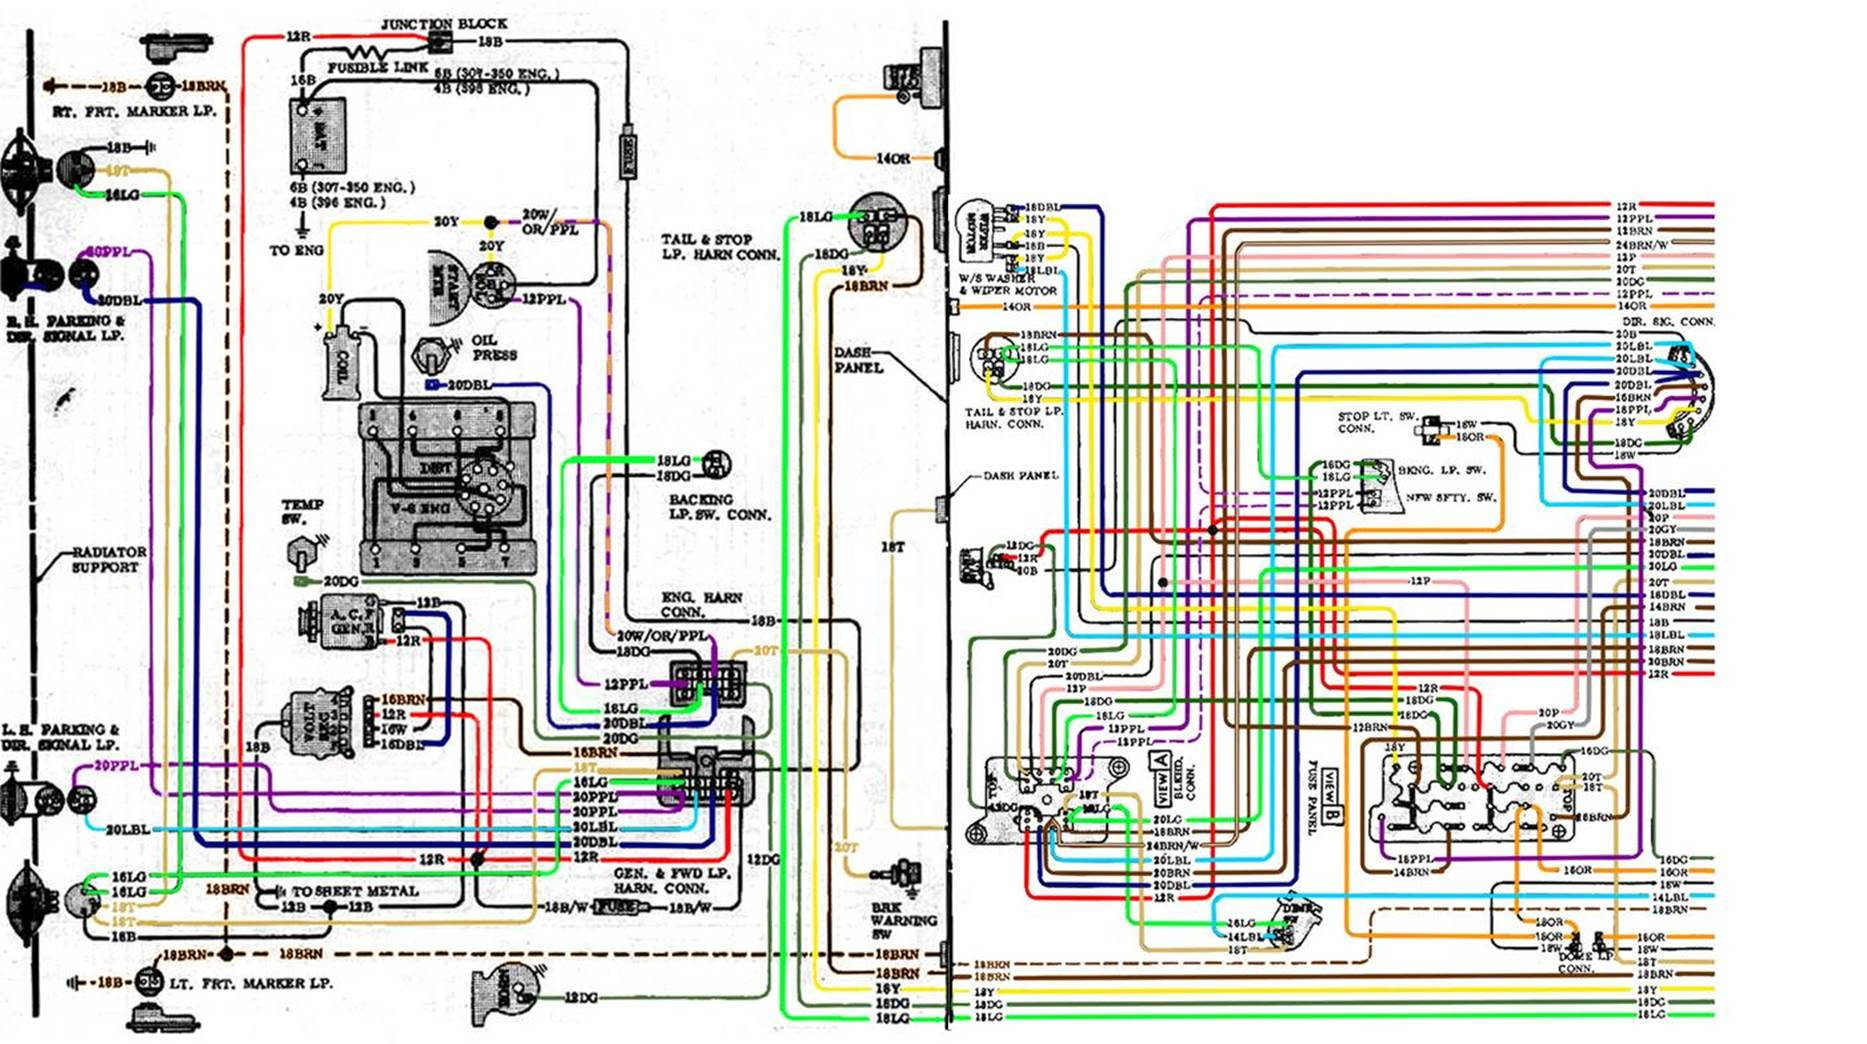 image002 67 72 chevy wiring diagram 69 chevelle wiring diagram at crackthecode.co